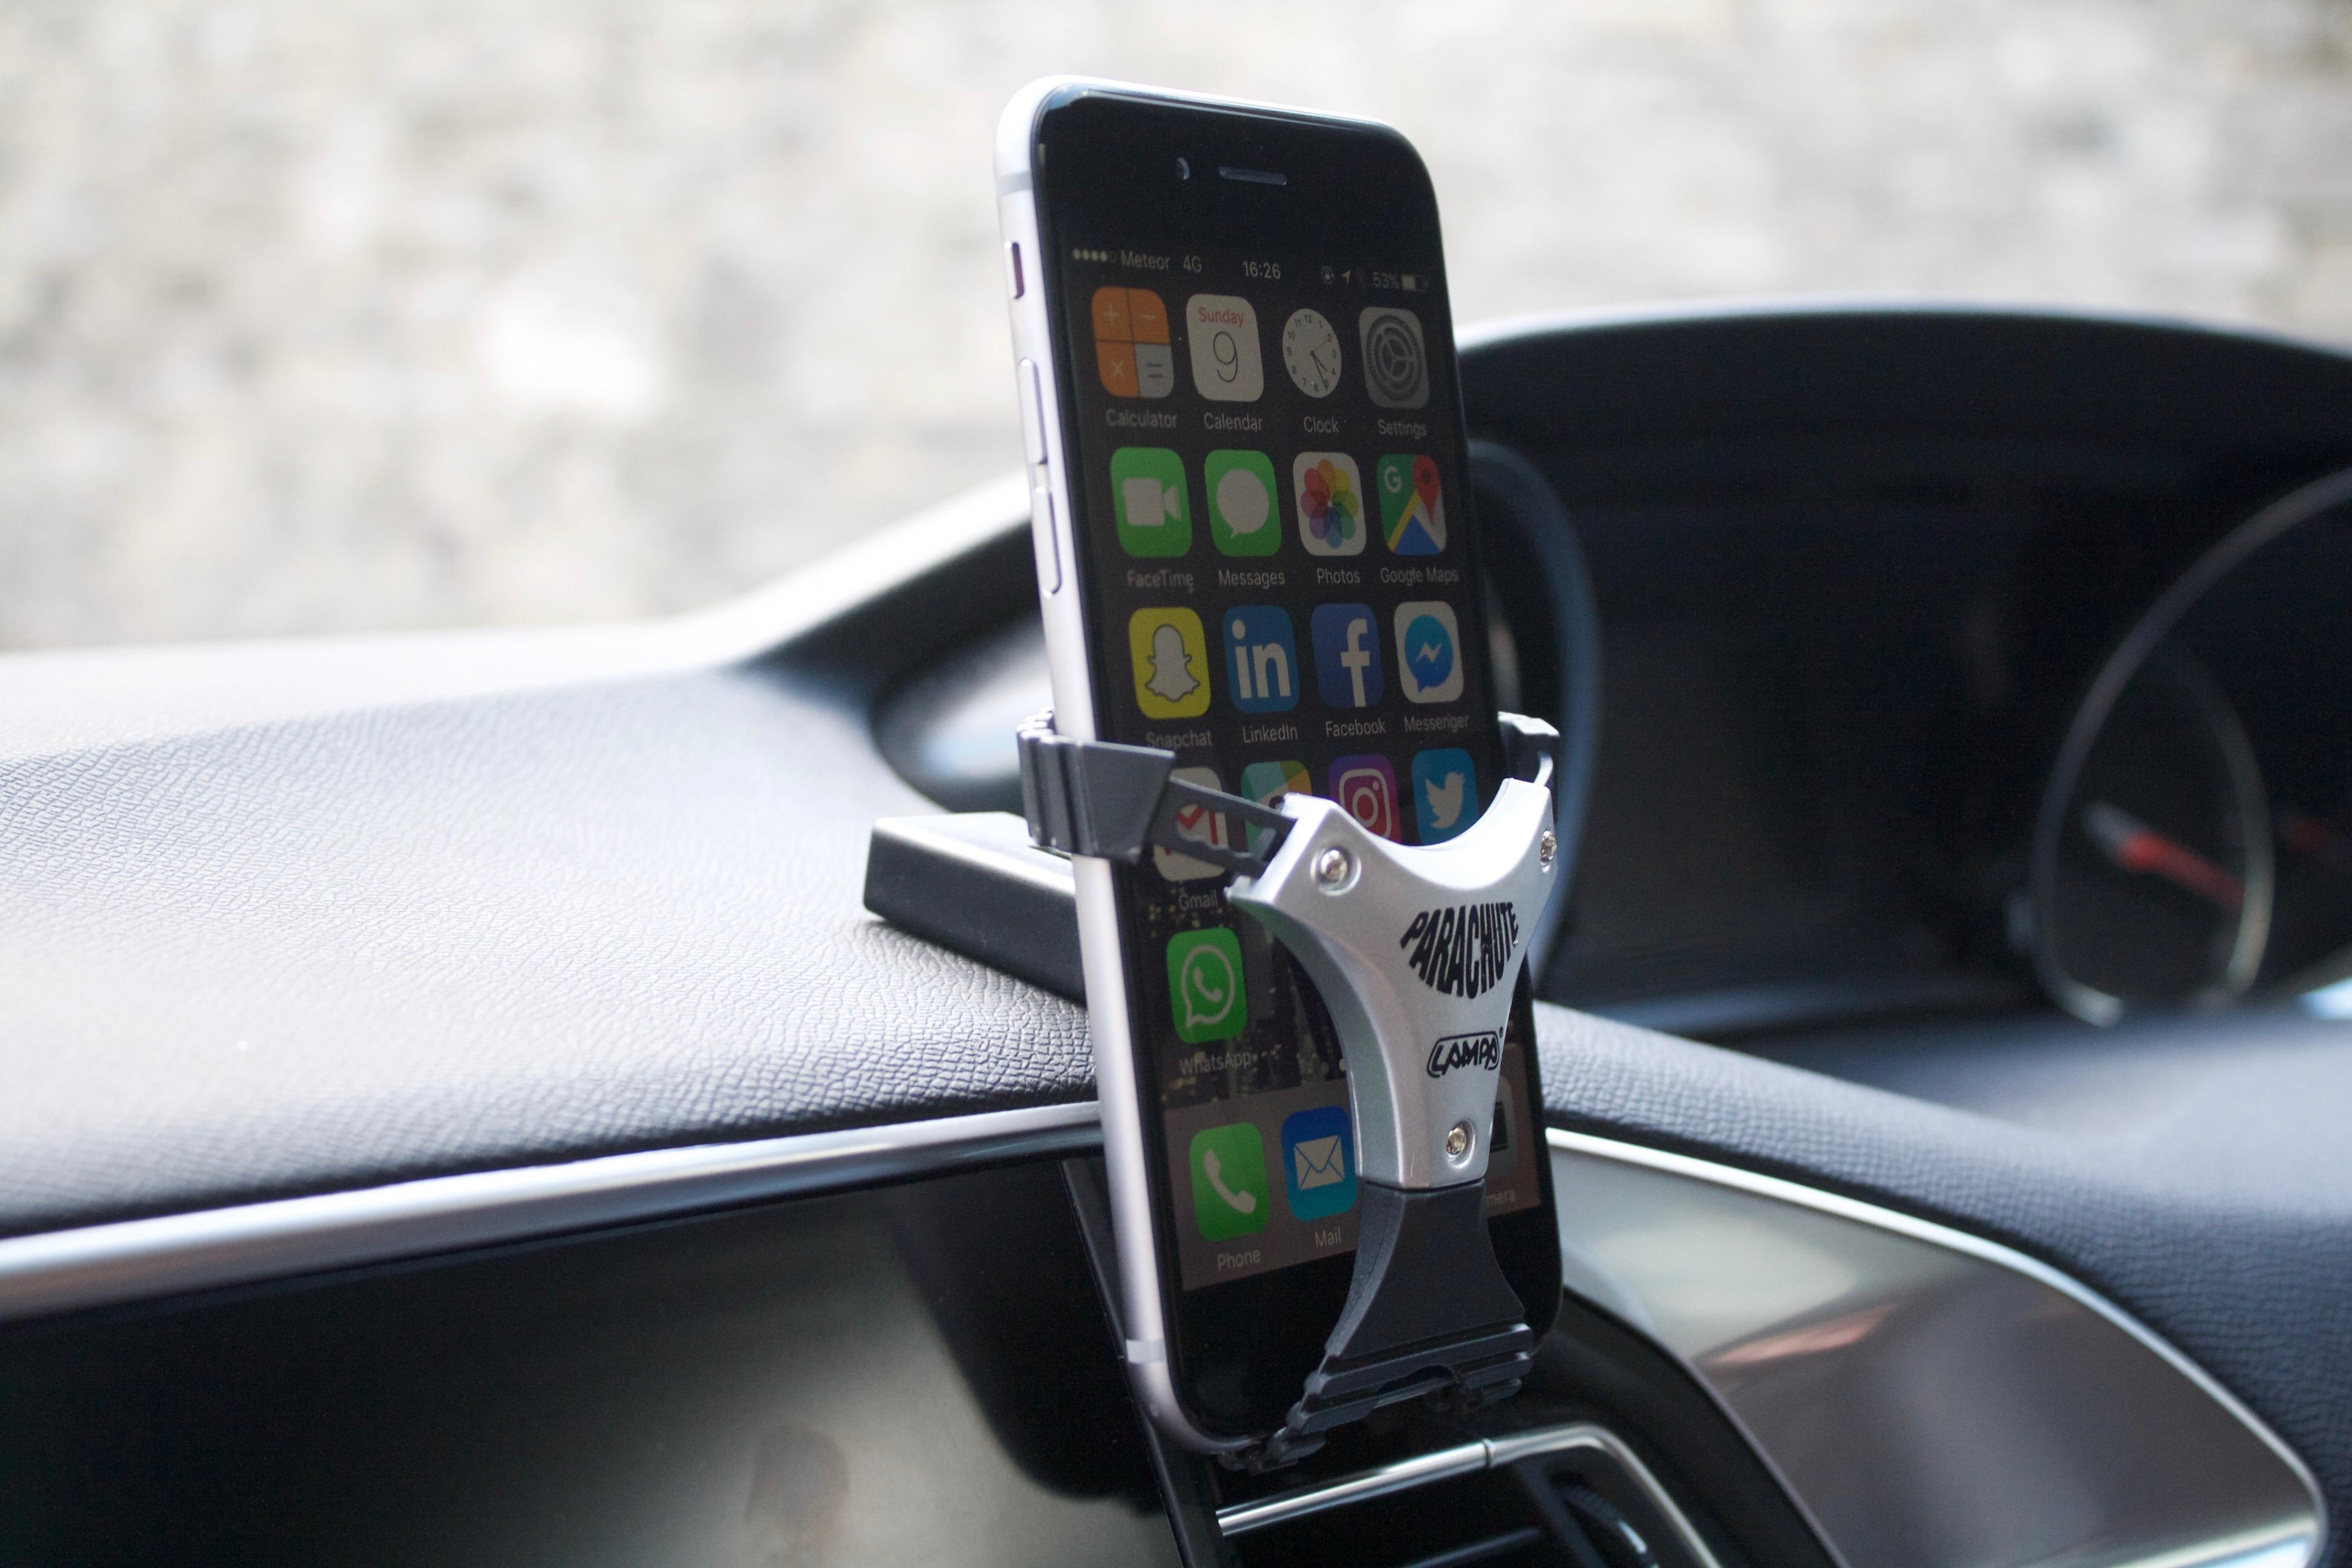 Product Review: Lampa Parachute Mobile Phone Holder